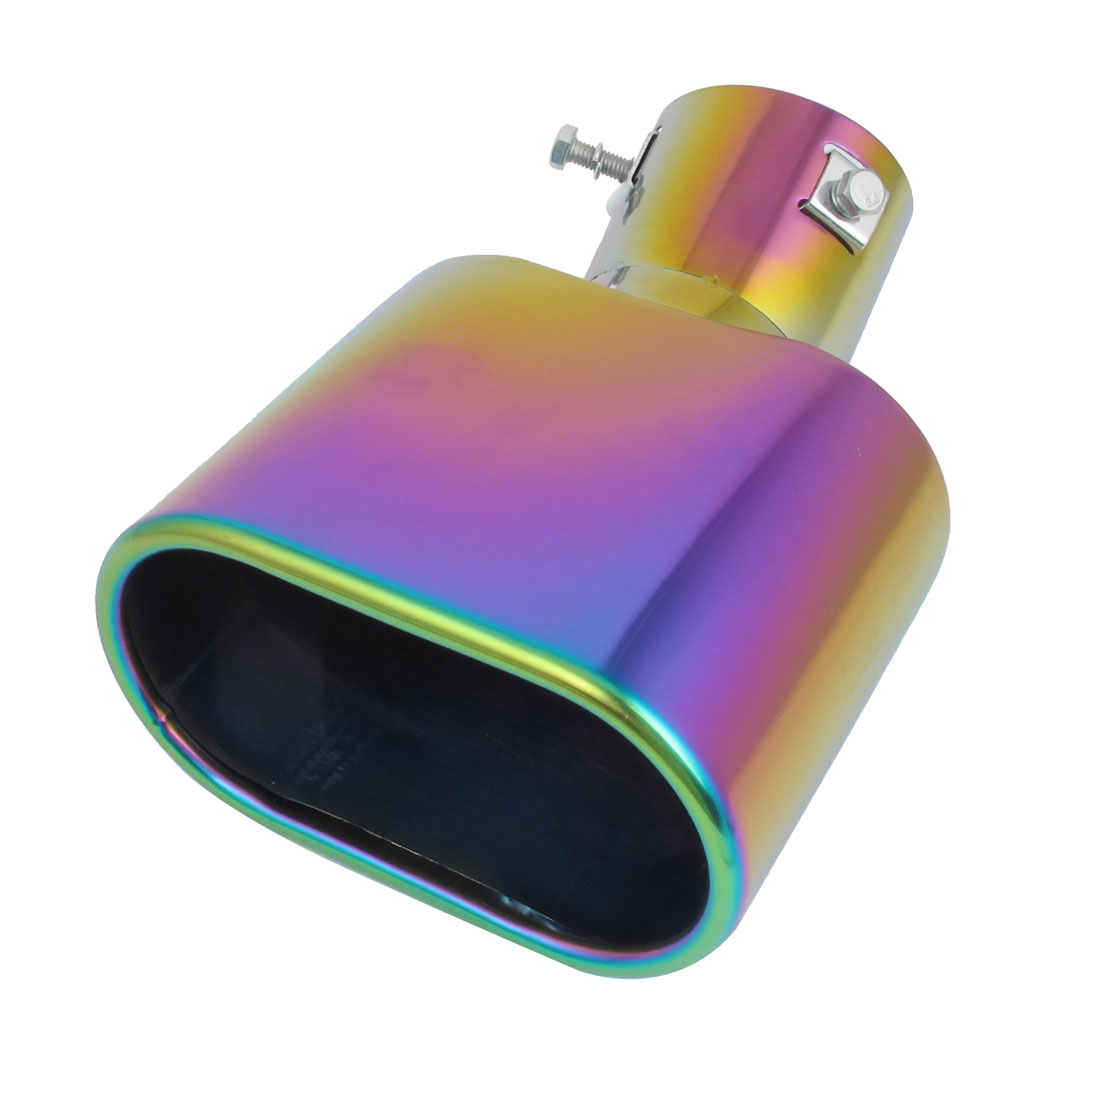 62mm Inlet Dia Colorful Stainless Steel Car Exhaust Muffler Pipe Tail Tip for Focus